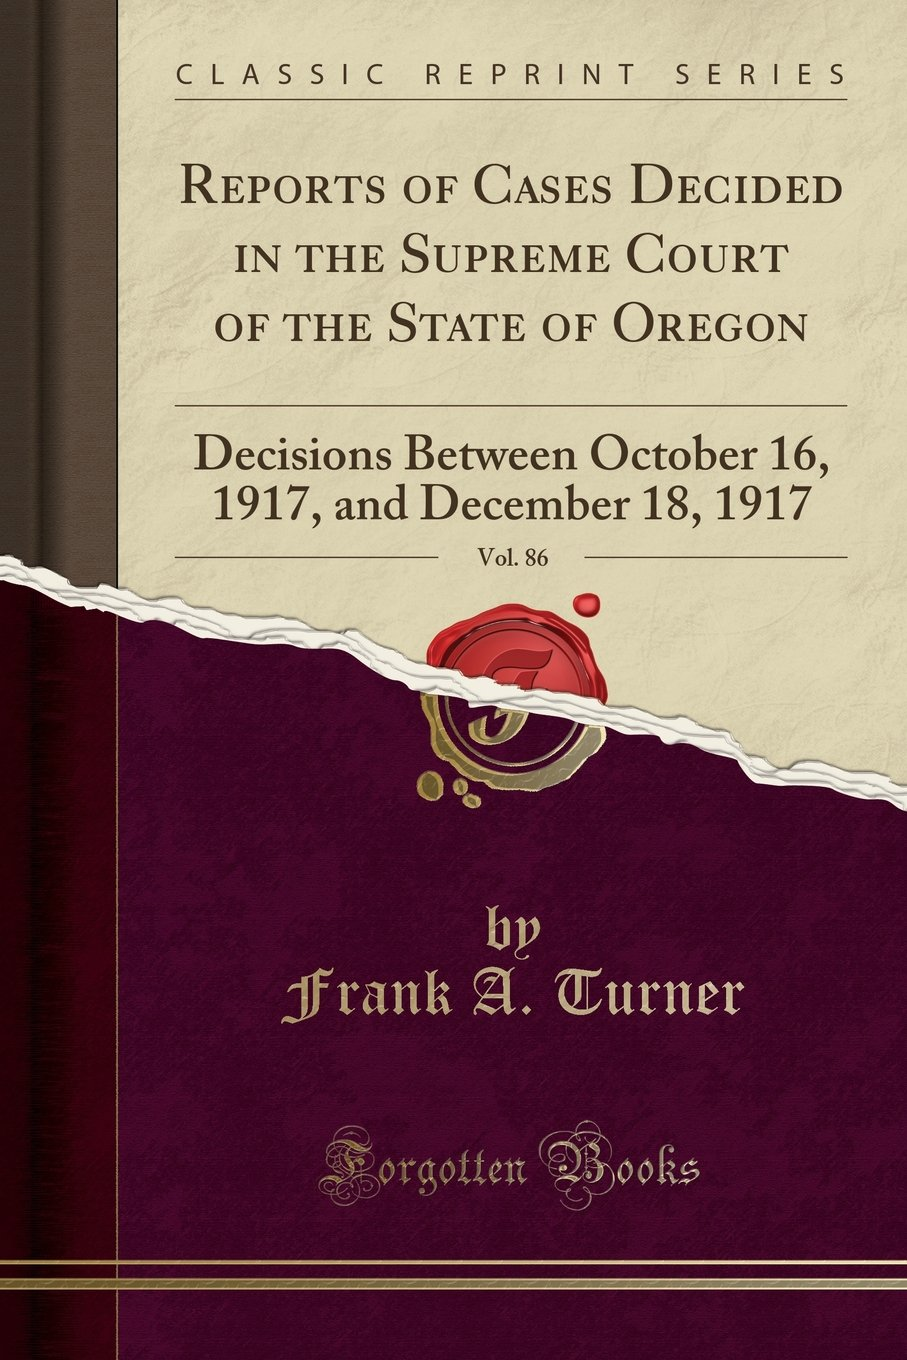 Reports of Cases Decided in the Supreme Court of the State of Oregon, Vol. 86: Decisions Between October 16, 1917, and December 18, 1917 (Classic Reprint) pdf